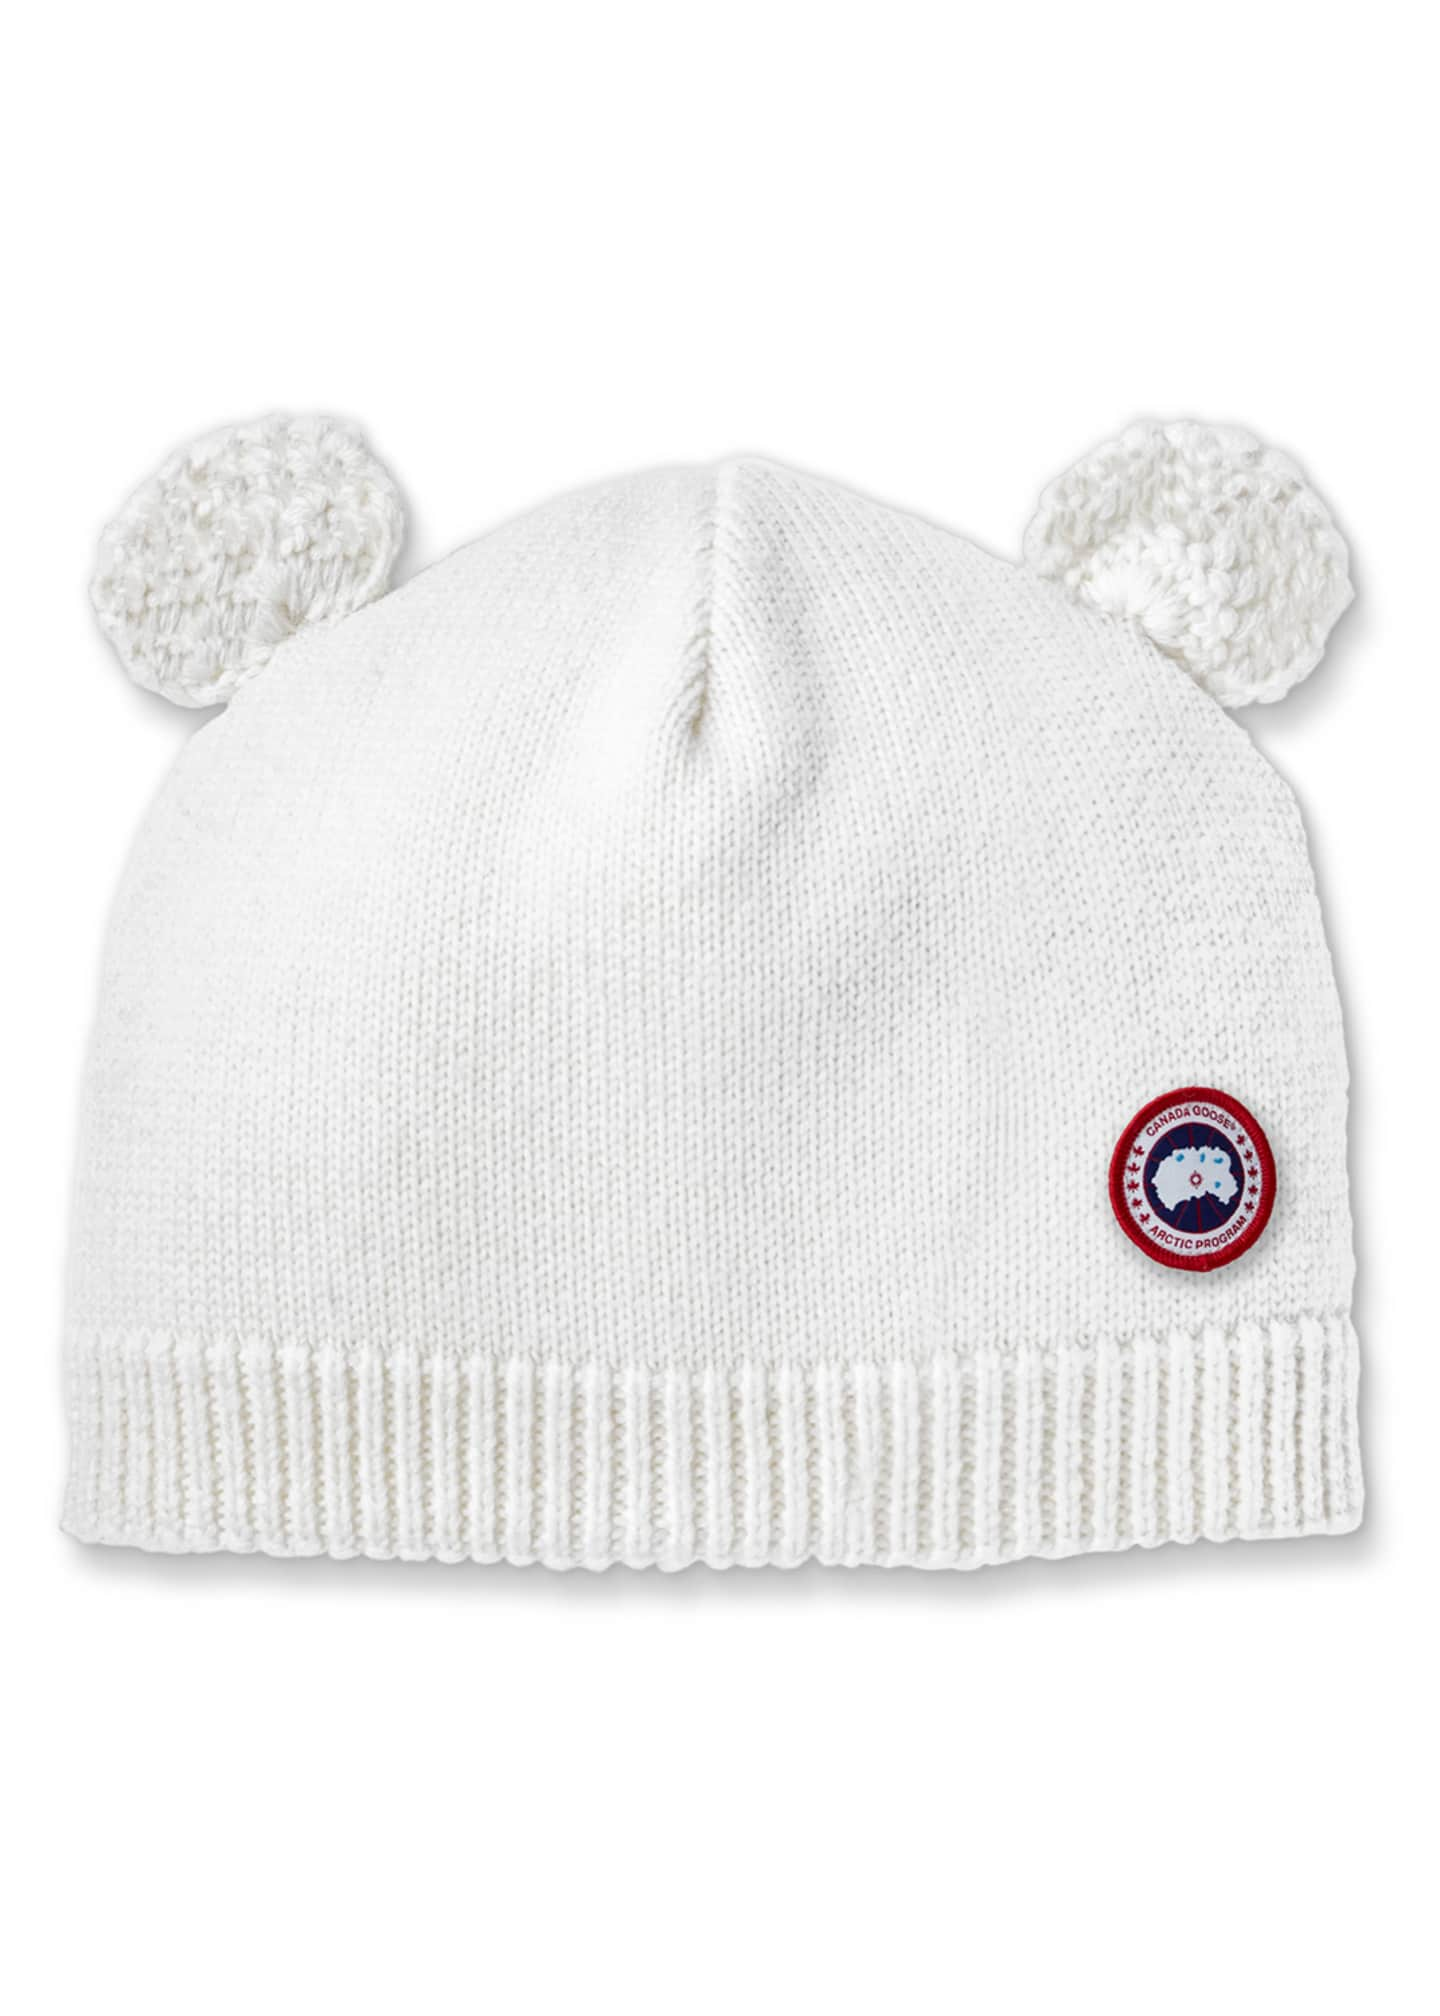 Canada Goose Baby's Knit Hat w/ Crochet Animal